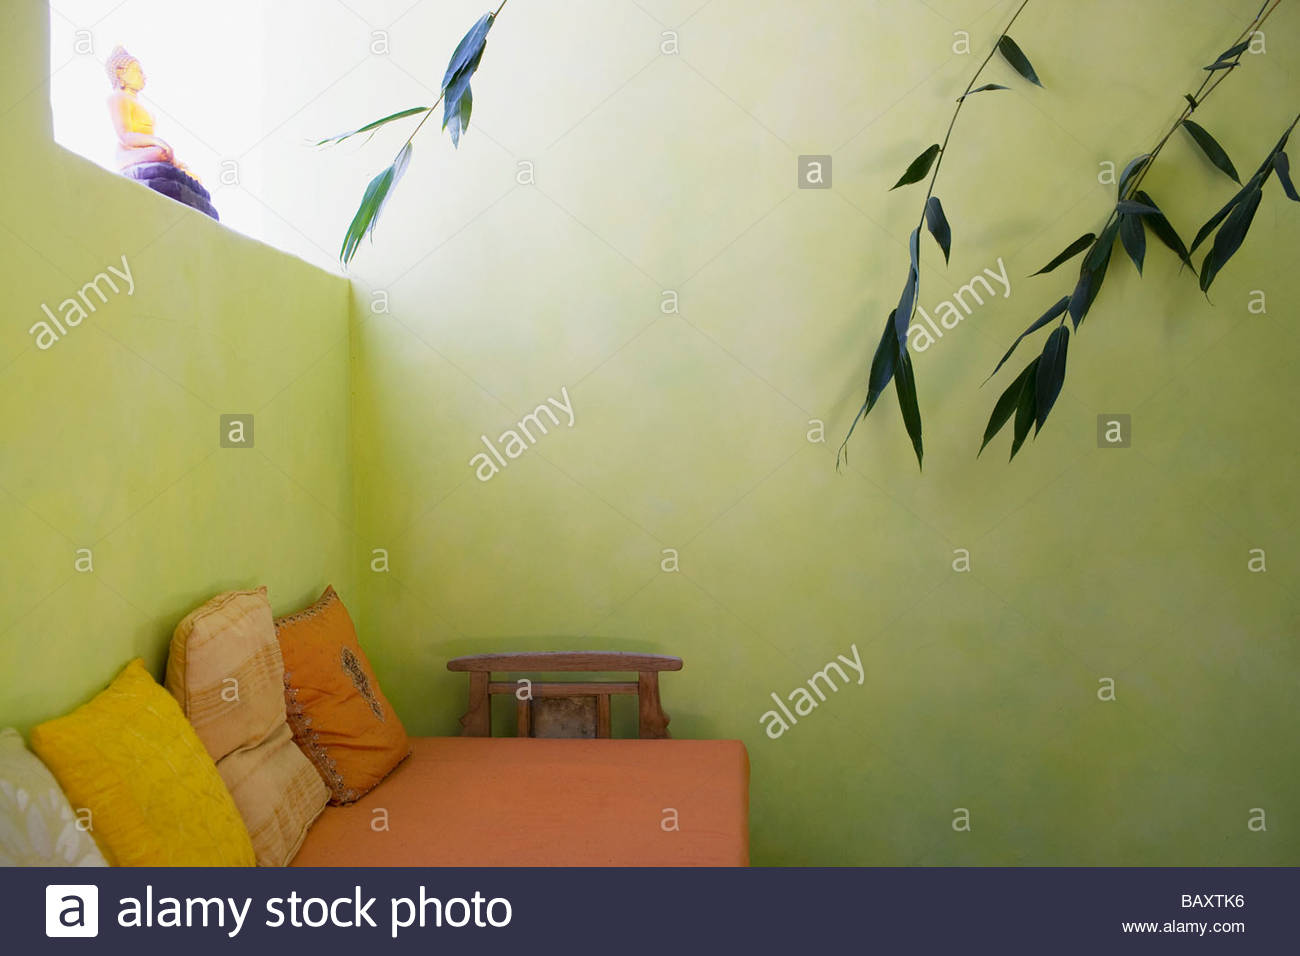 Daybed in green room with plants - Stock Image